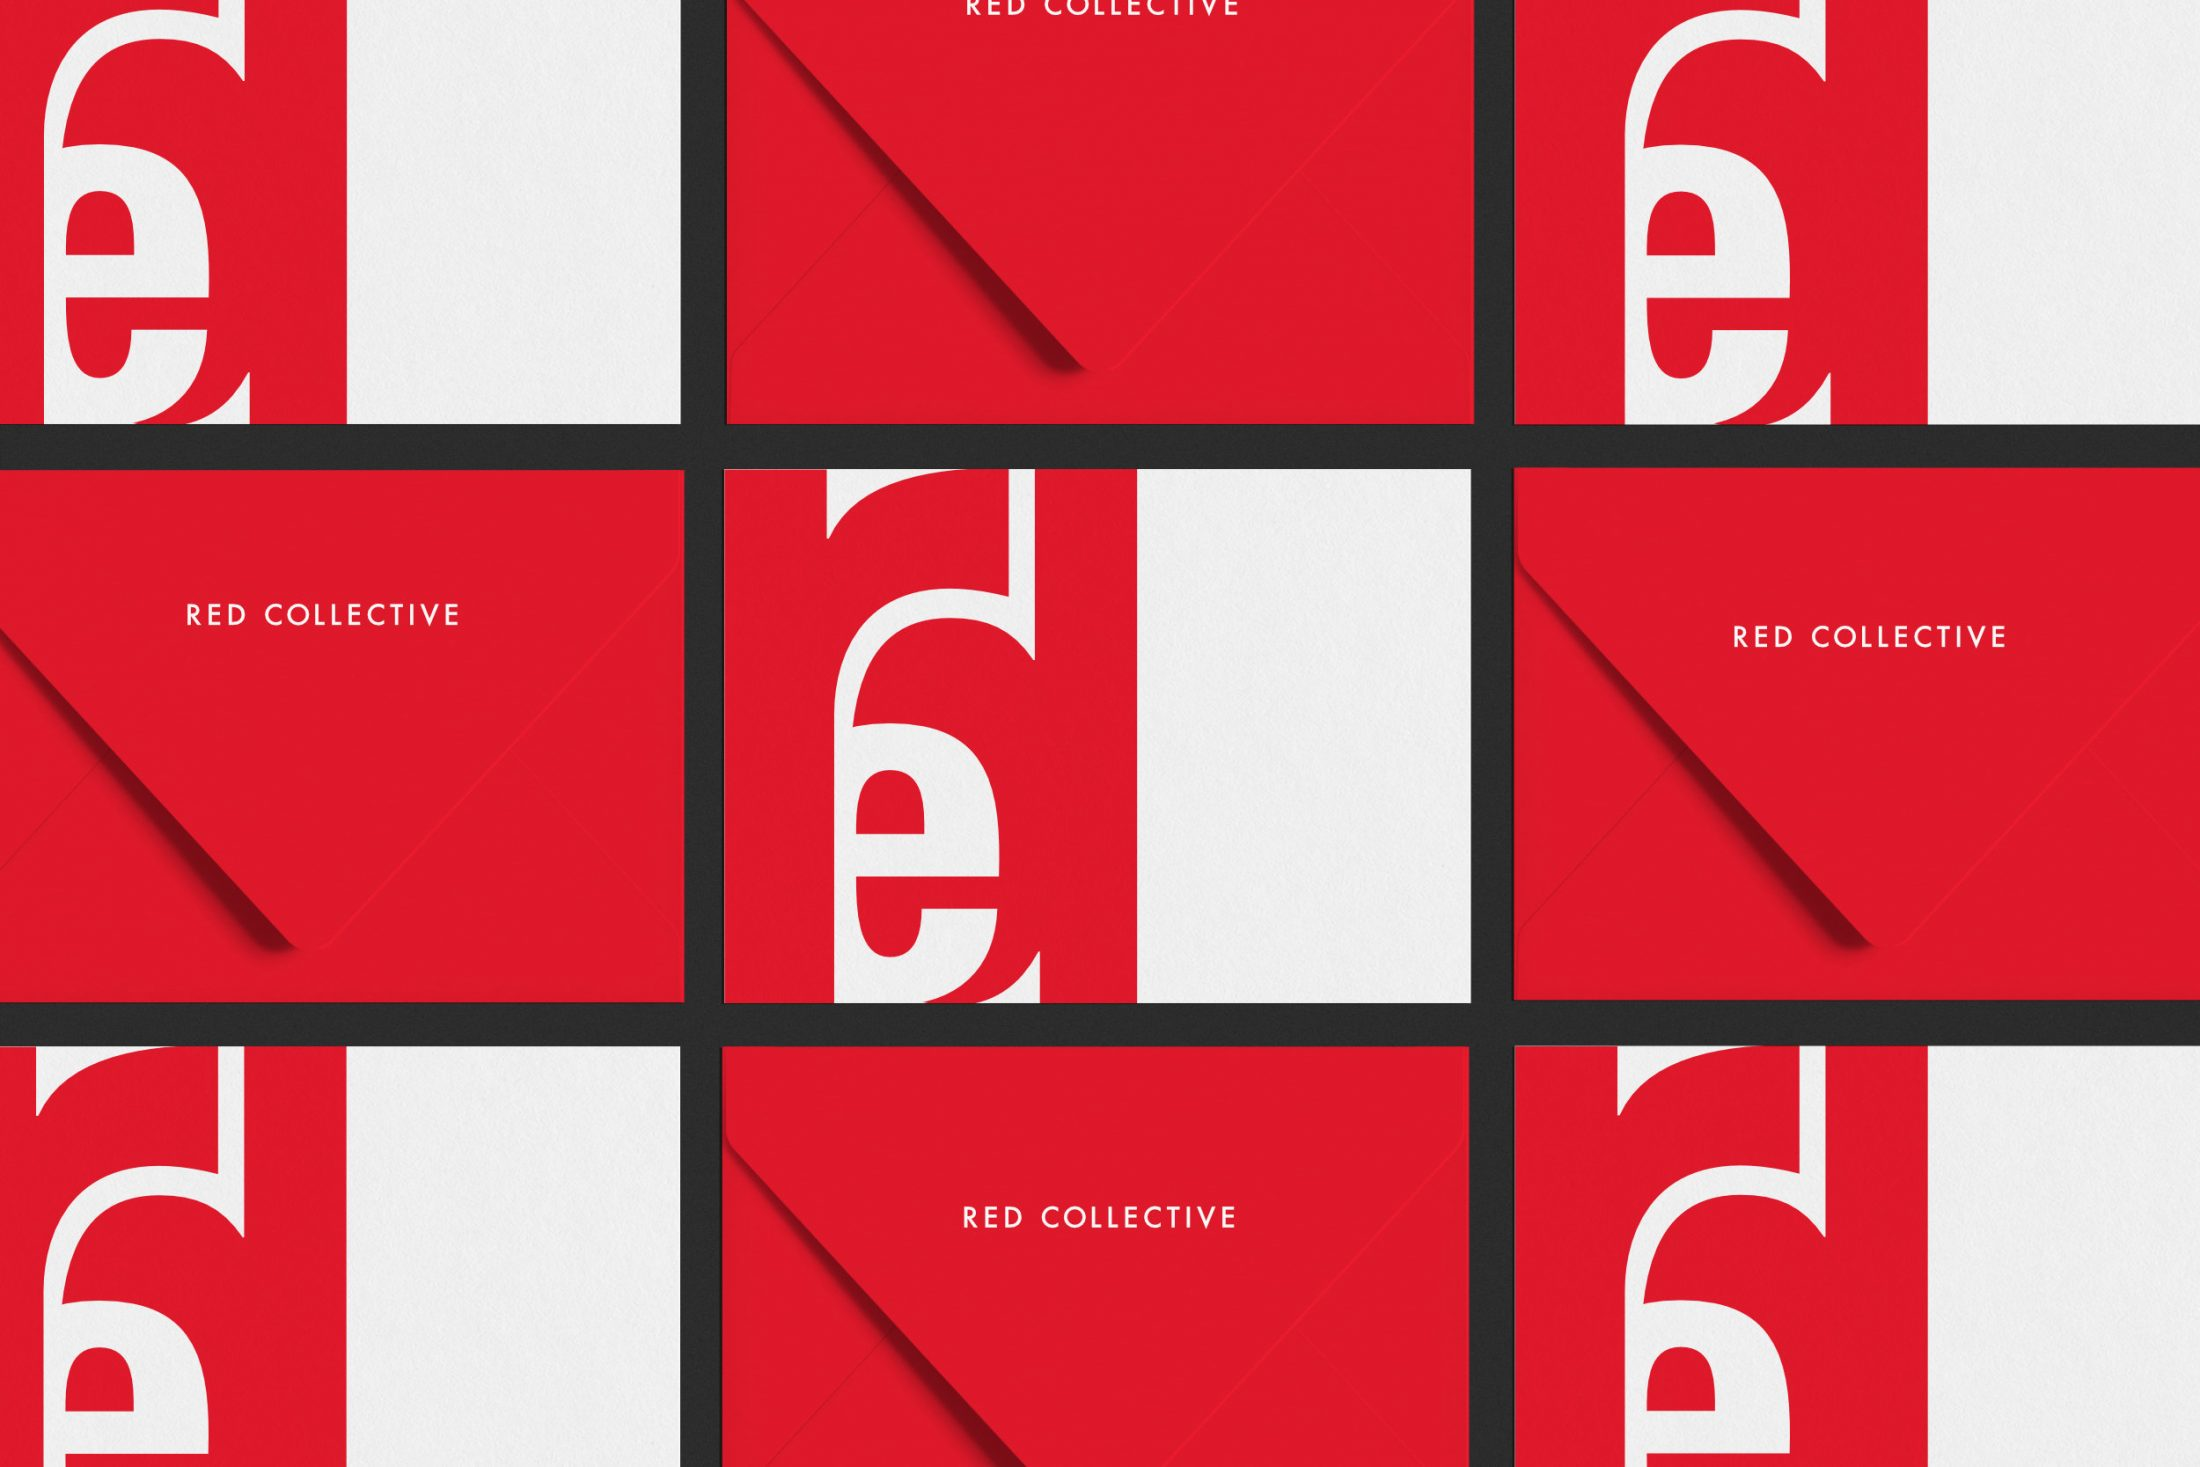 redcollective_cards-2200×1467-1